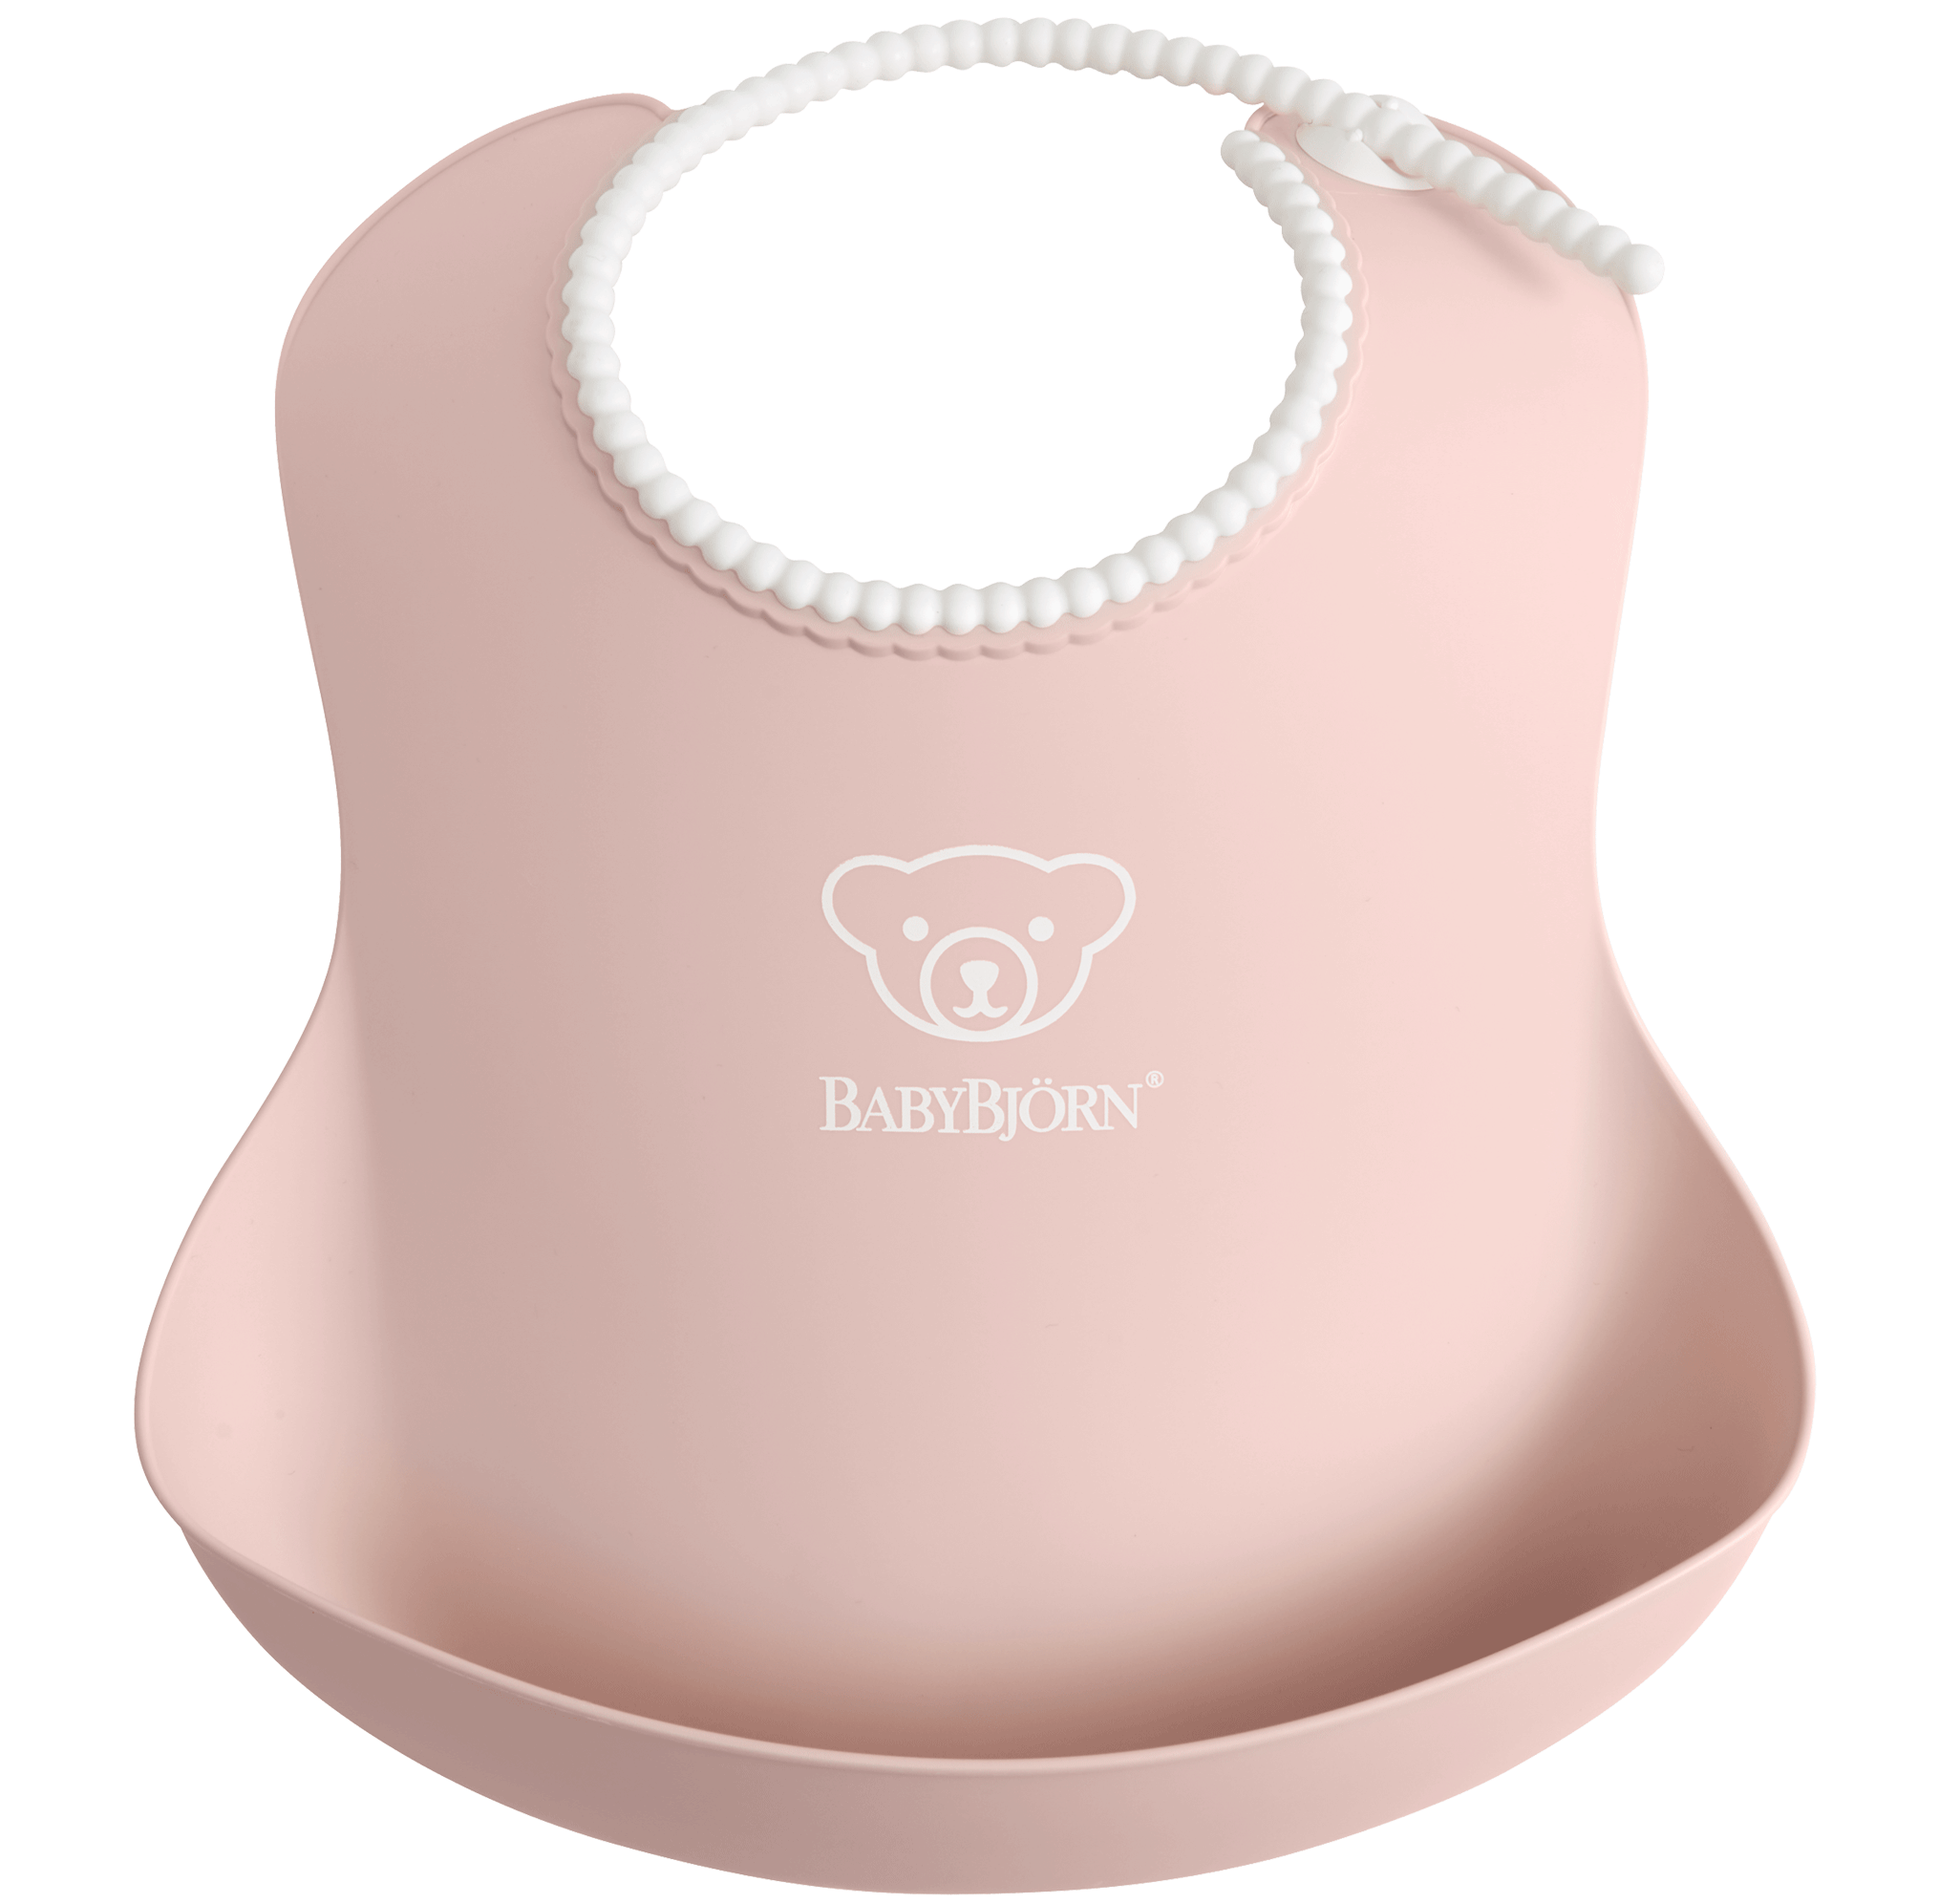 Comfy, waterproof baby bib with deep spill pocket catches any mess, Powder pink - BABYBJÖRN